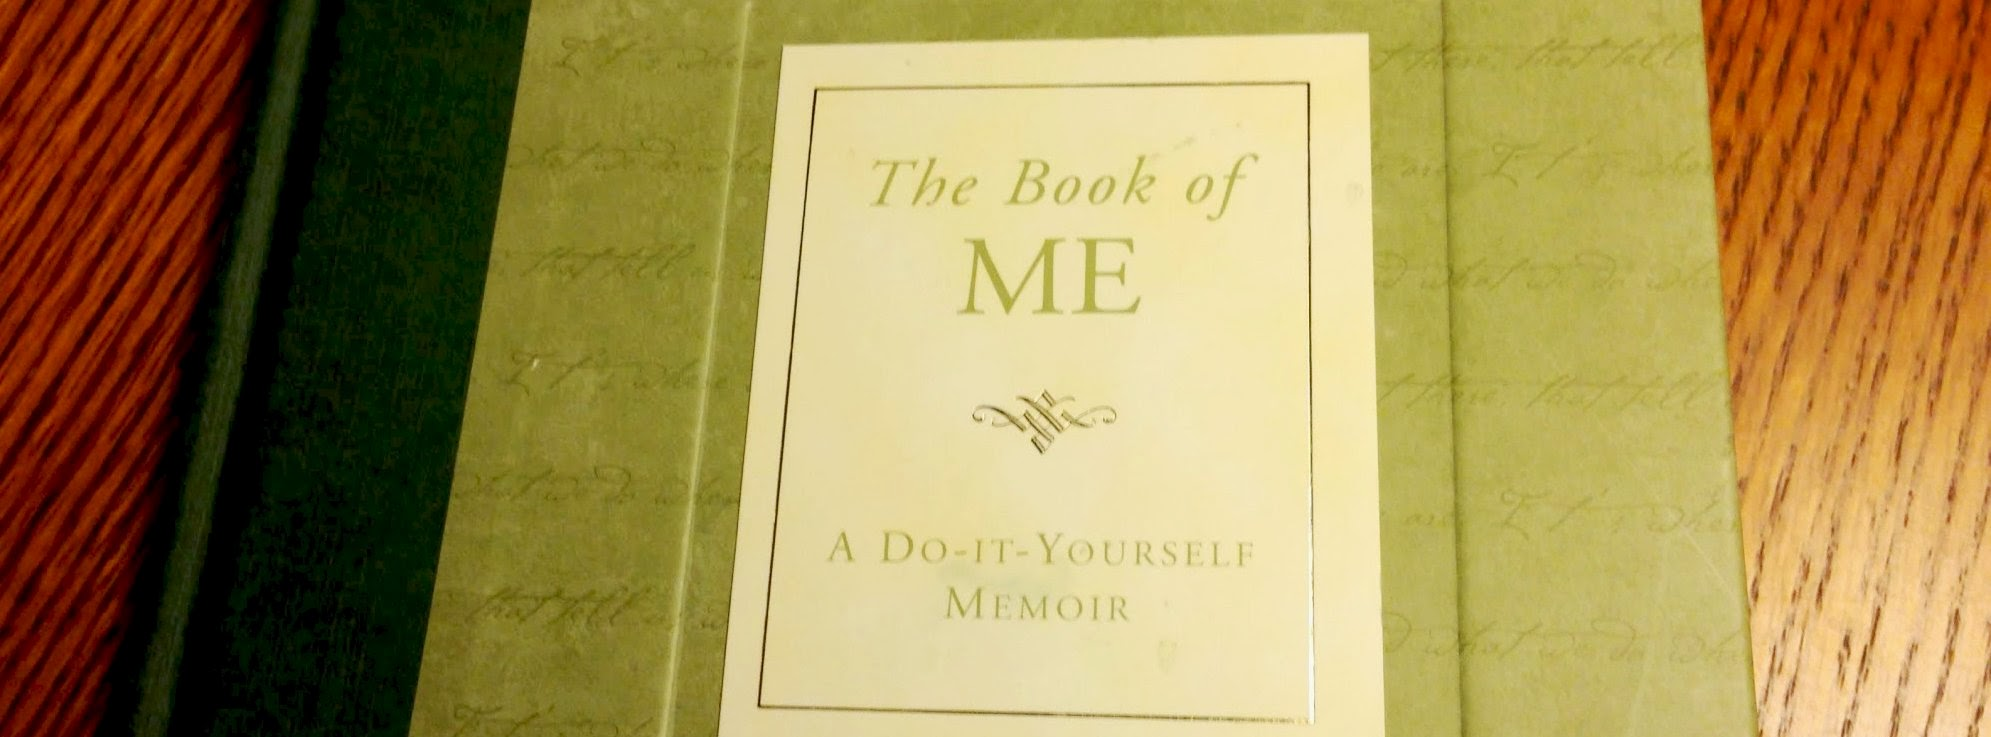 Recommended journaling tool the book of me real life counseling we find journaling rather helpful in getting to know ourselves and would recommend this book the book of me a do it yourself memoir solutioingenieria Images